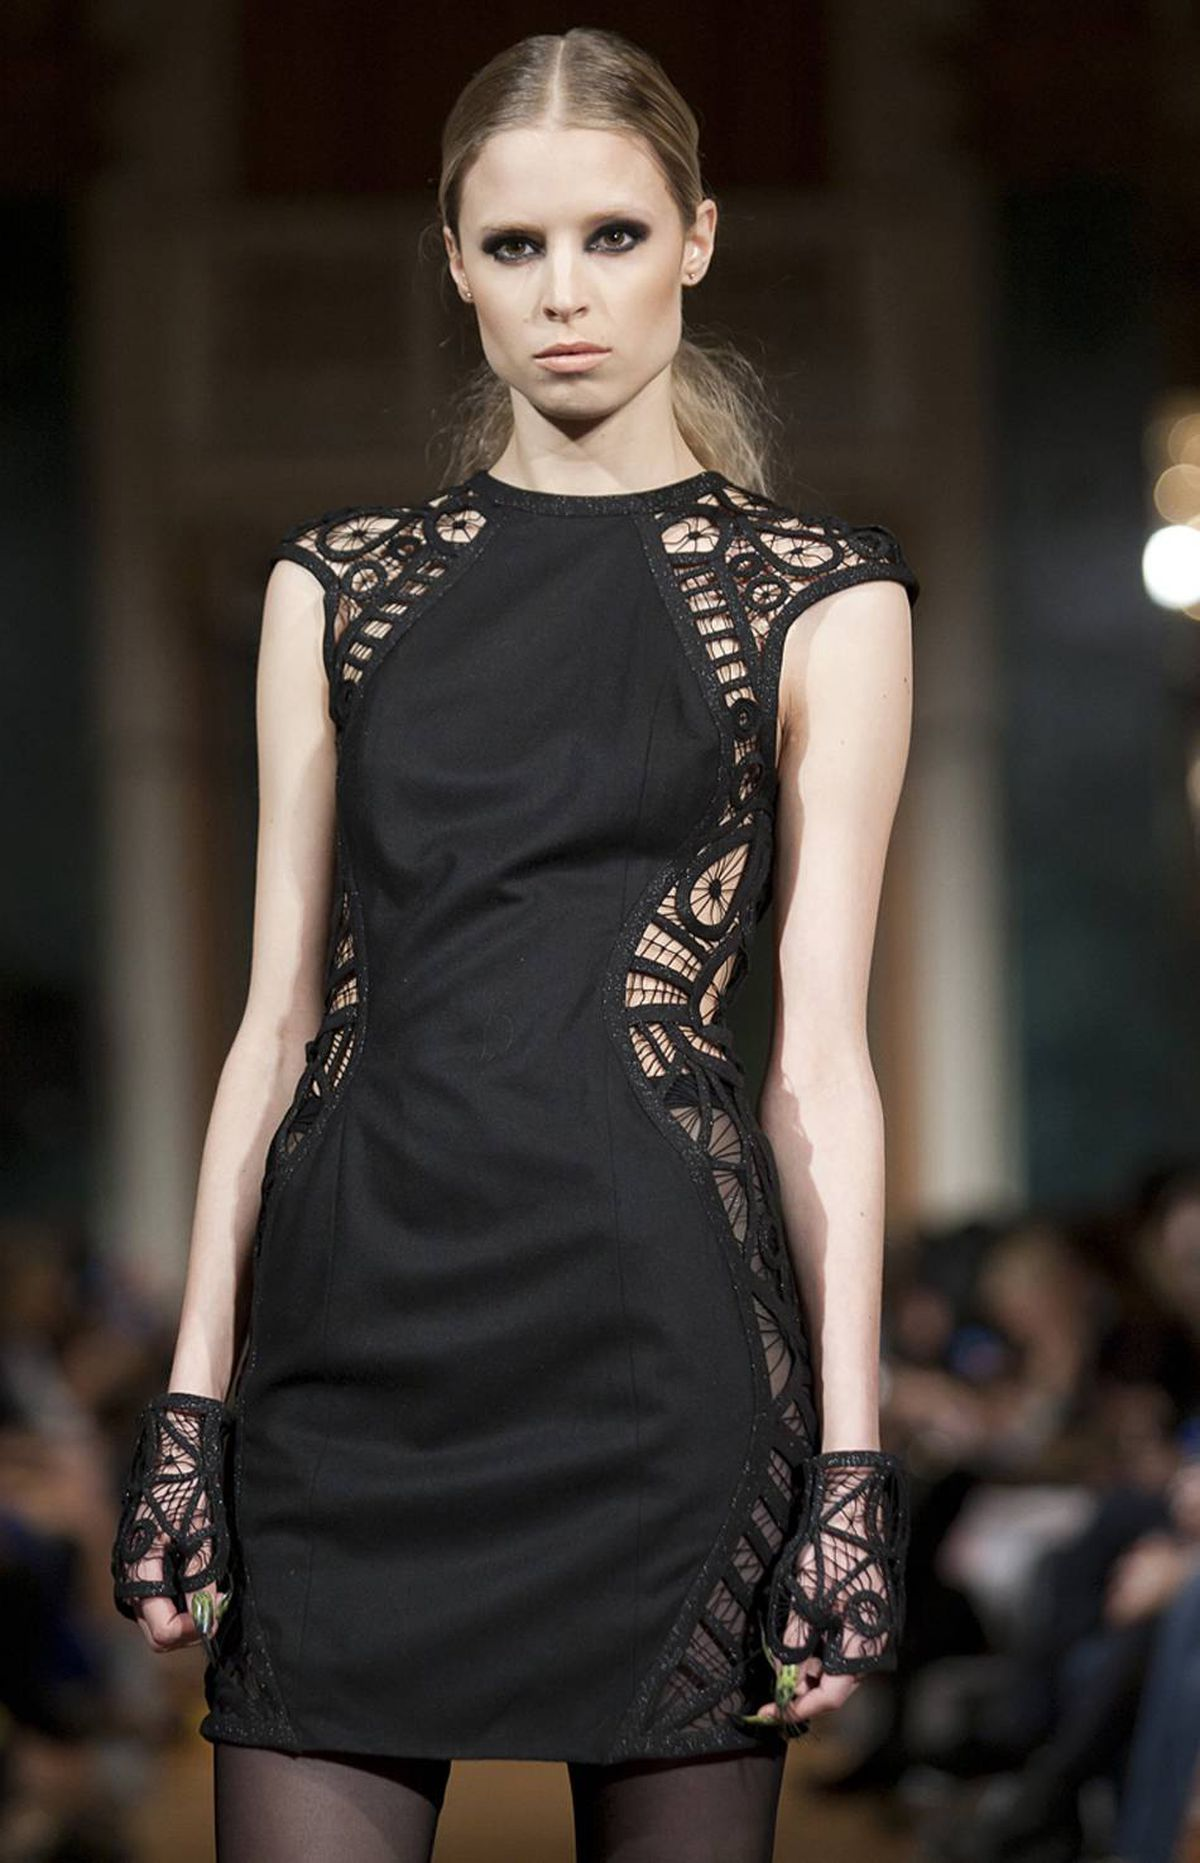 Black from start to finish – minus some rather notable jewel-toned statement nails – the Project Runway Canada alum's show offered a series of bold looks, many featuring strategic panels of peek-a-boo lace-meets-crochet detailing. Pieces for a woman who wants to be seen.